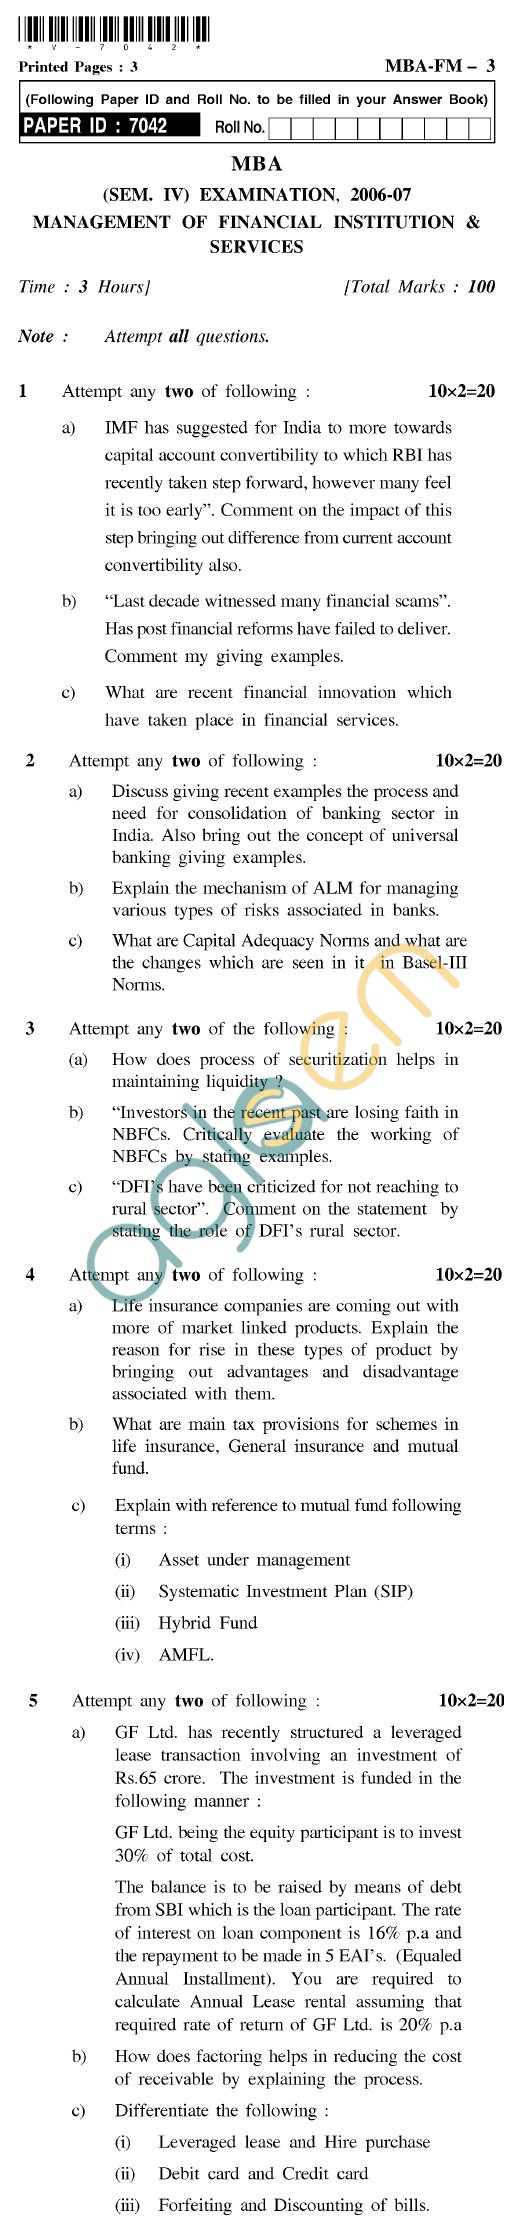 UPTU  MBA Question Papers - MBA-FM-3-Management of Financial Institution & Services